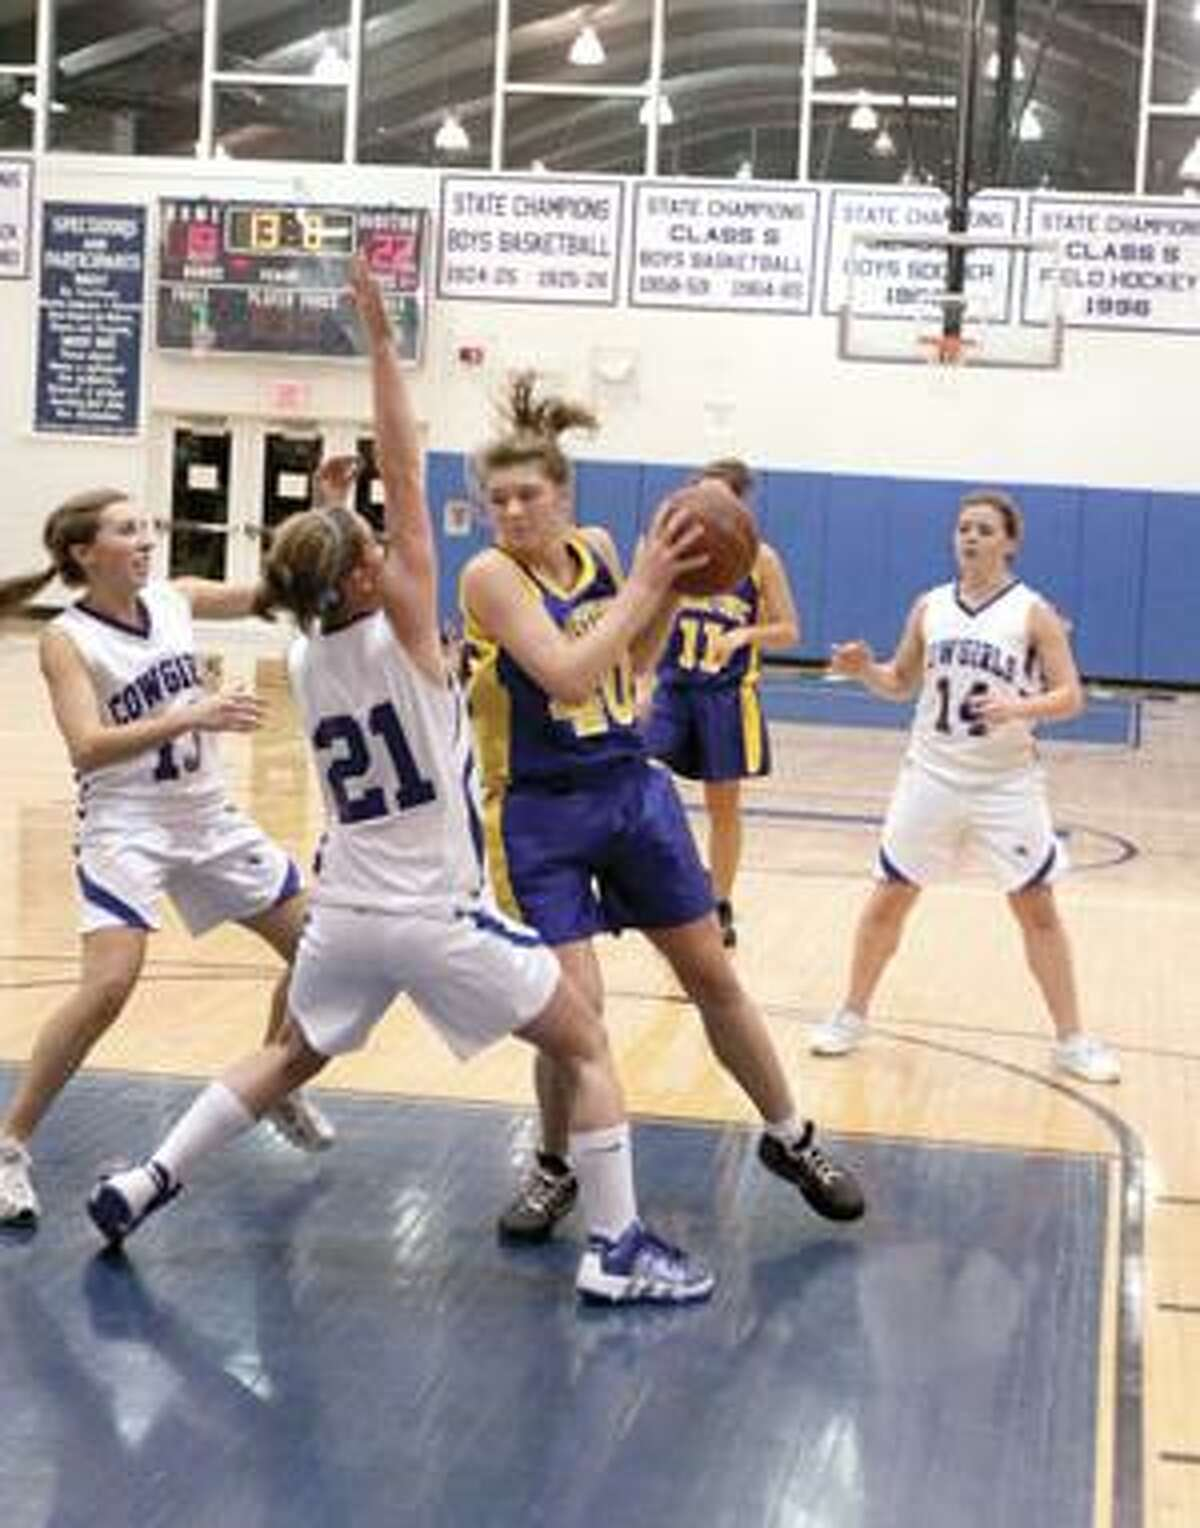 Housatonic's Danielle Kearns, center, grabs a rebound and looks to pass as Litchfield's Emily Andrulis (21) tries to block the move Monday in Litchfield.